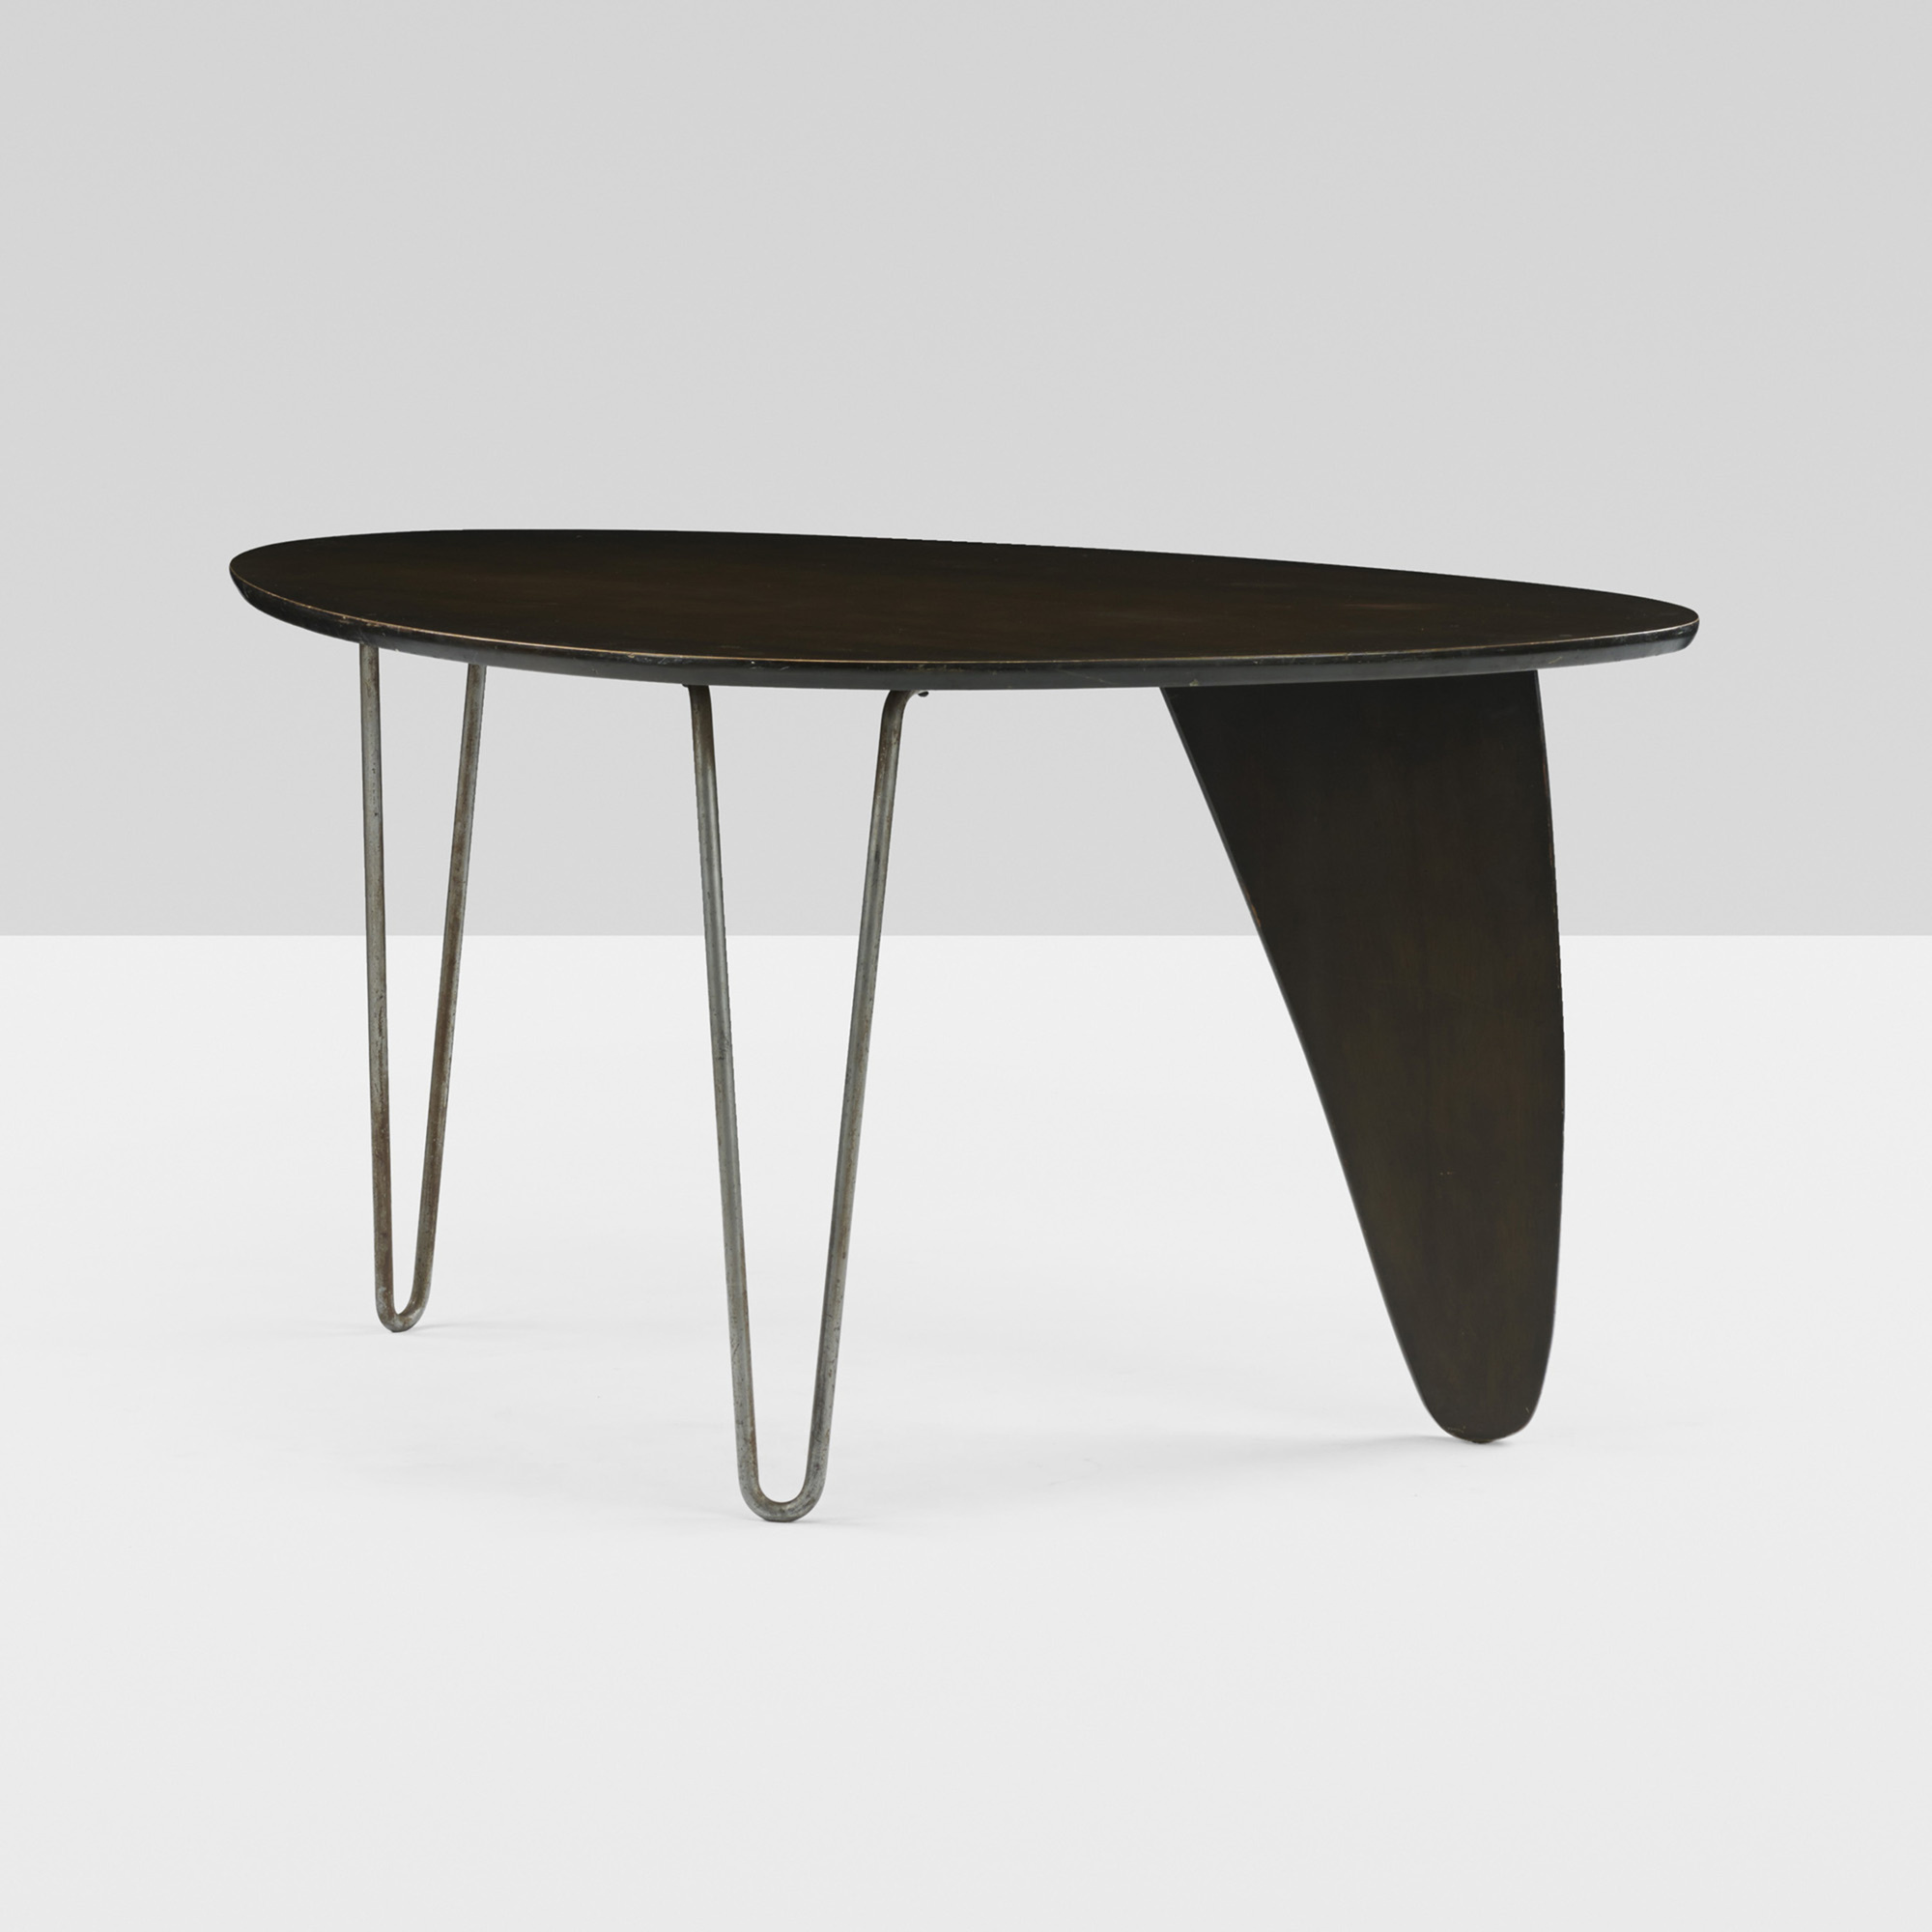 Etonnant ... 129: Isamu Noguchi / Rare And Important Rudder Dining Suite From The  Hasting Estate (